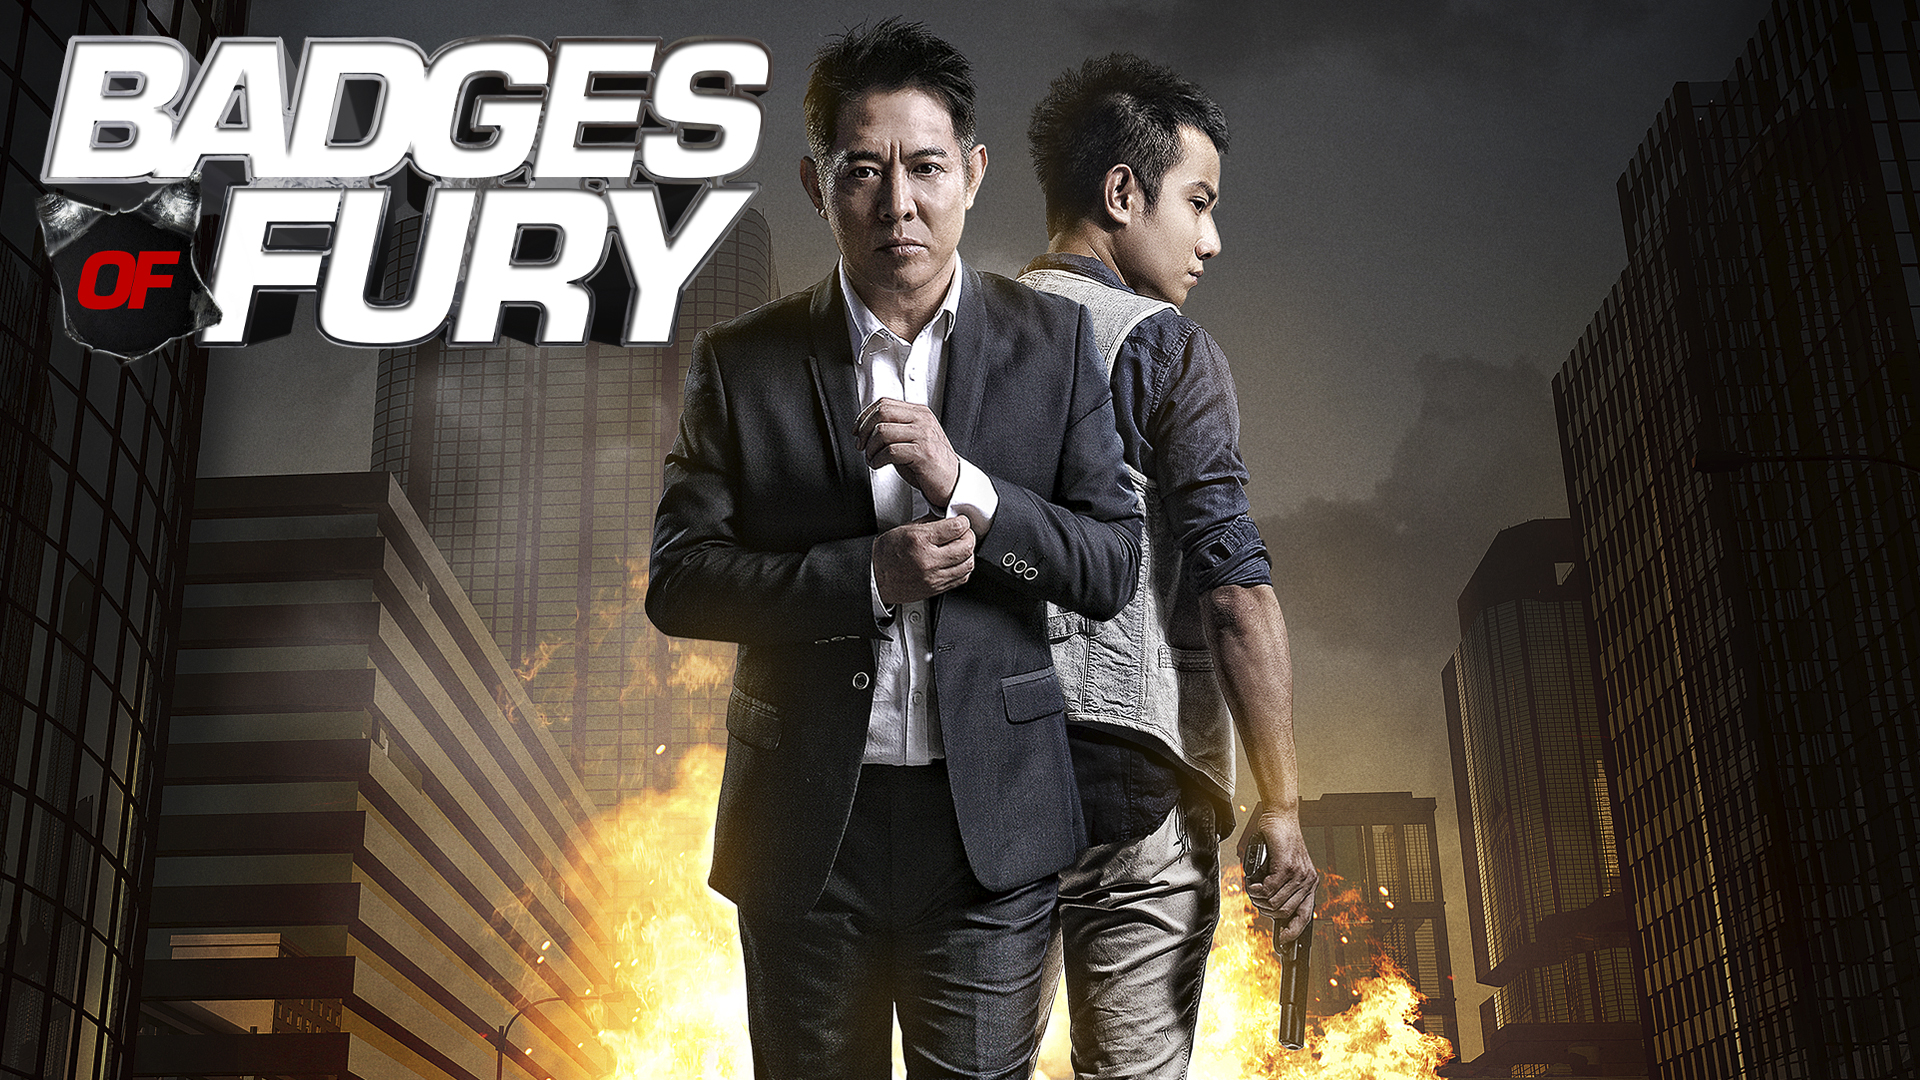 Badges of Fury (English Subtitled)